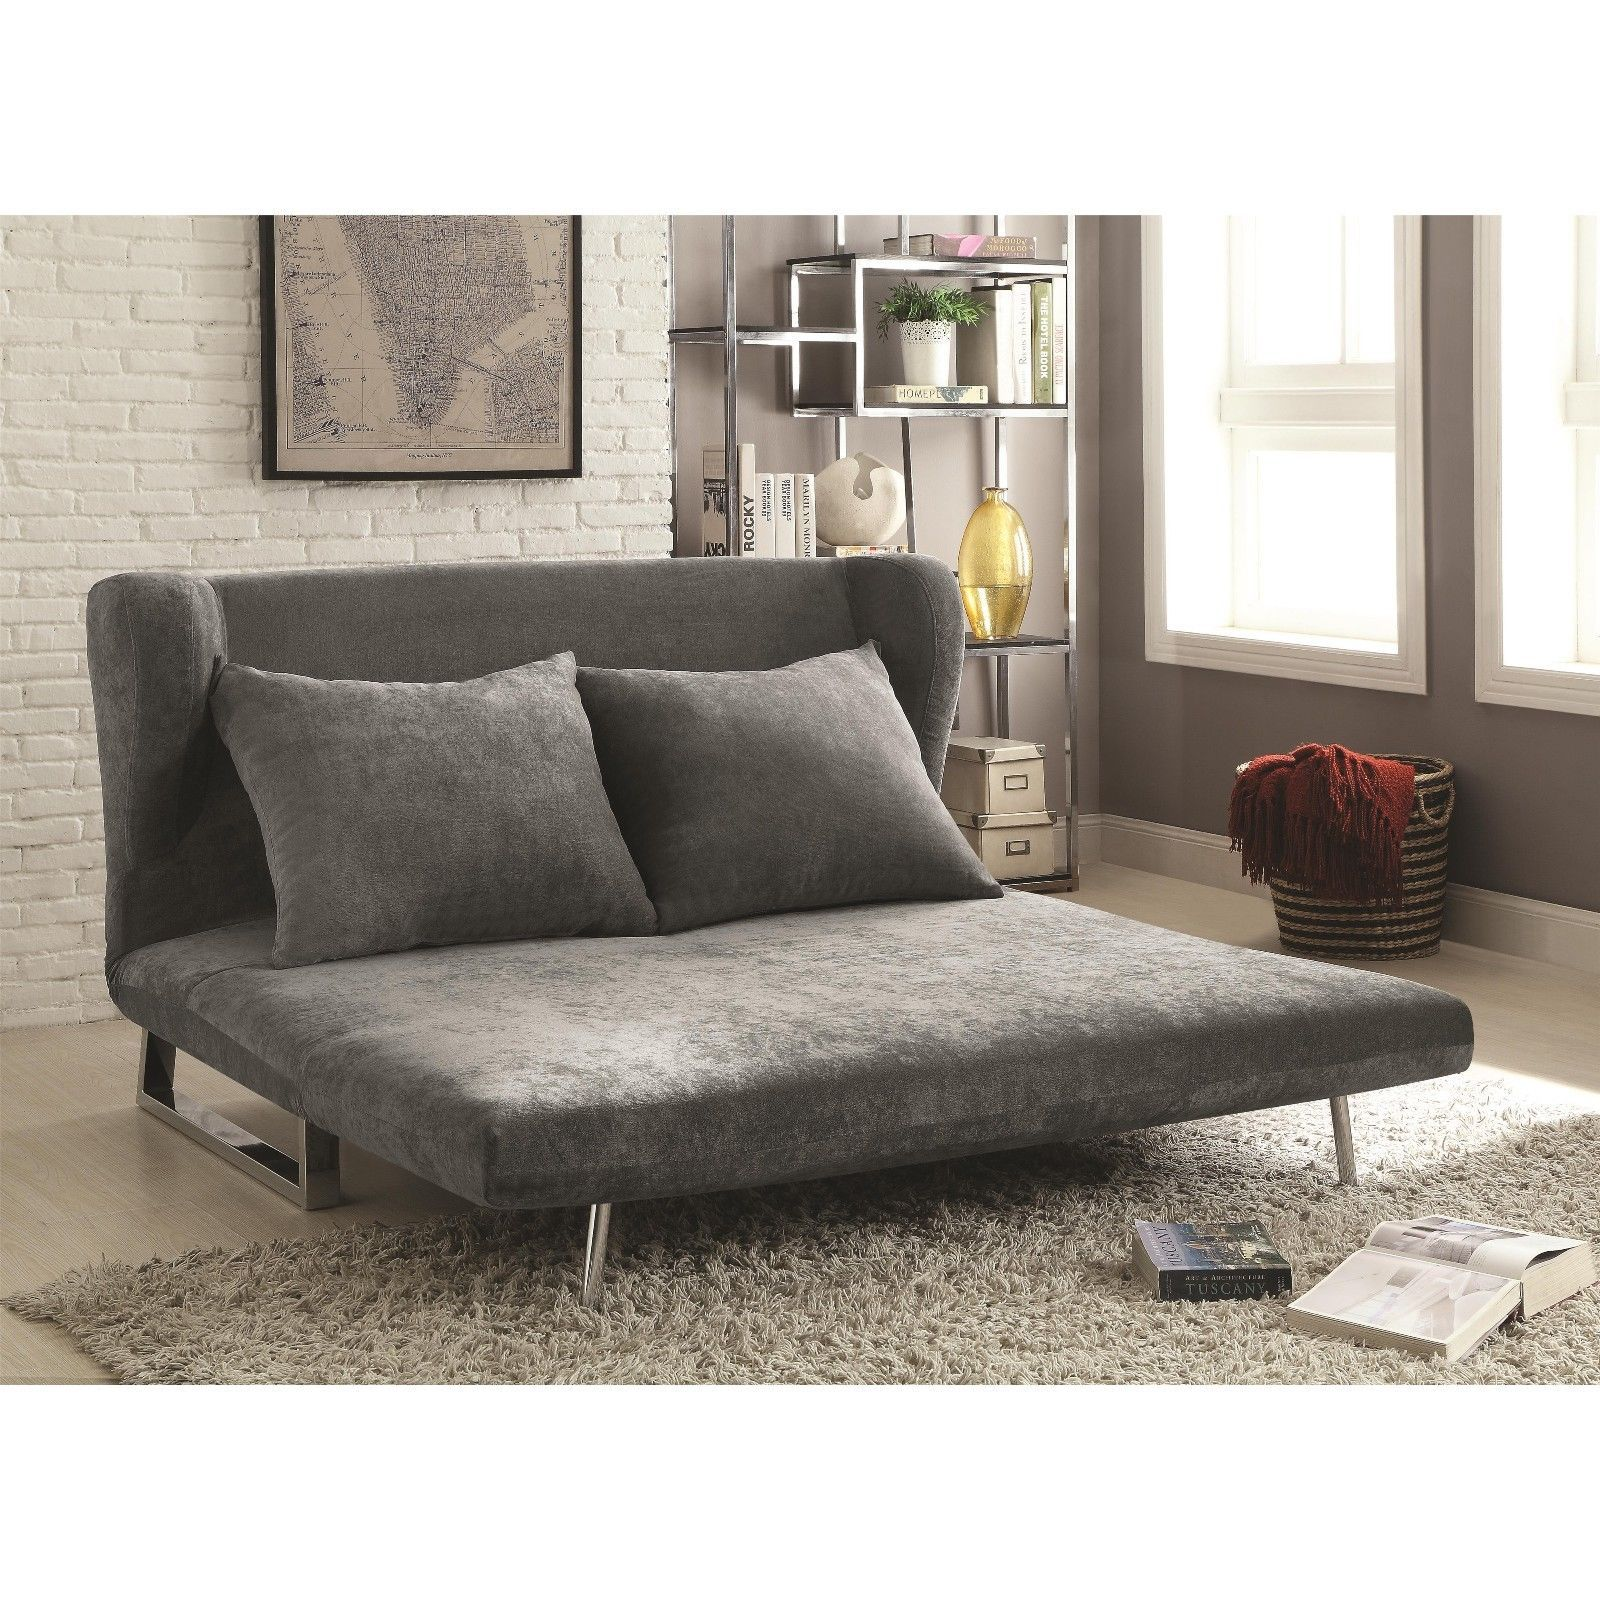 Dorm Room Sofa Beds.Perfect For Dorm Room Gray Velvet Queen Sofa Bed Futon